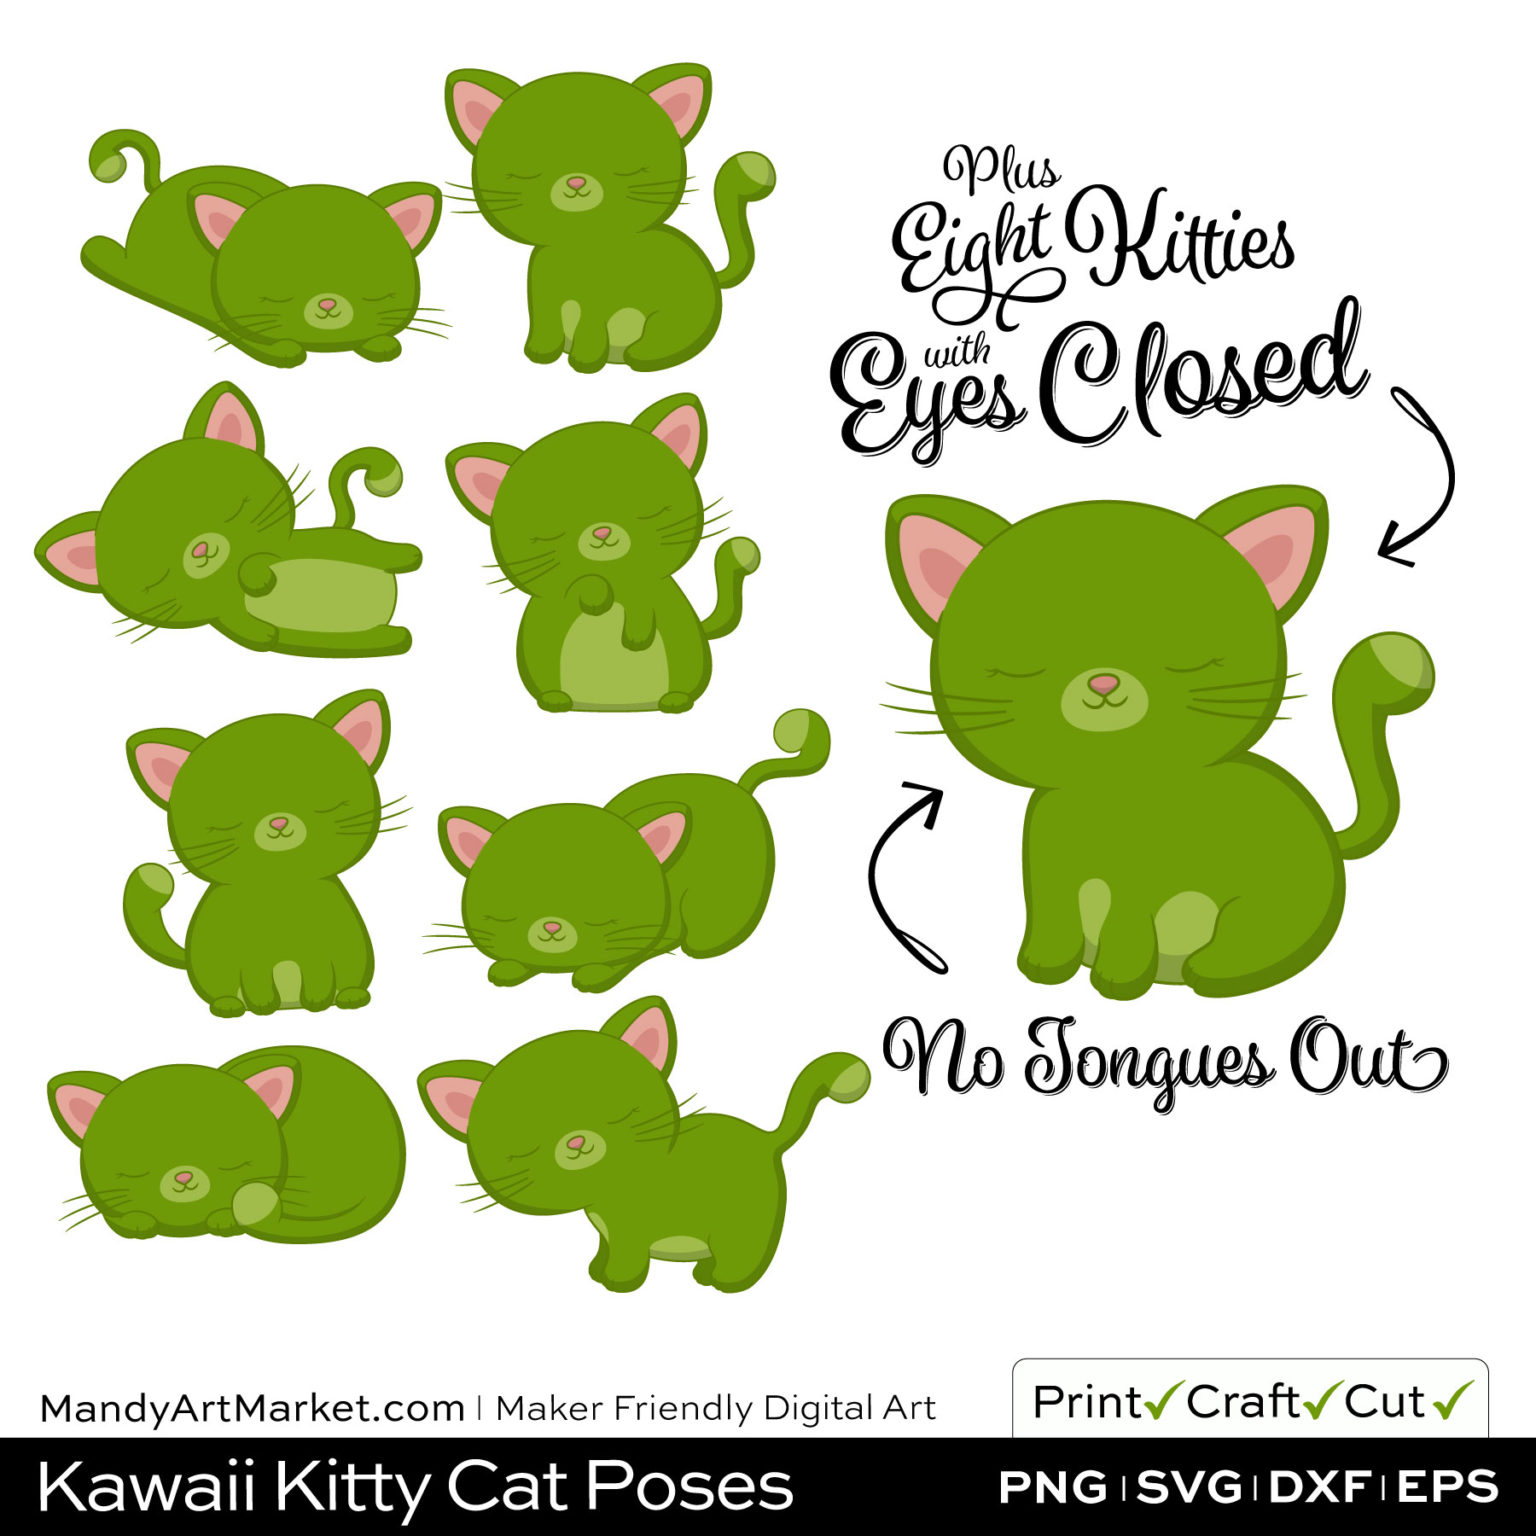 Bamboo Green Kawaii Kitty Cat Poses Clipart PNGs Included in Download